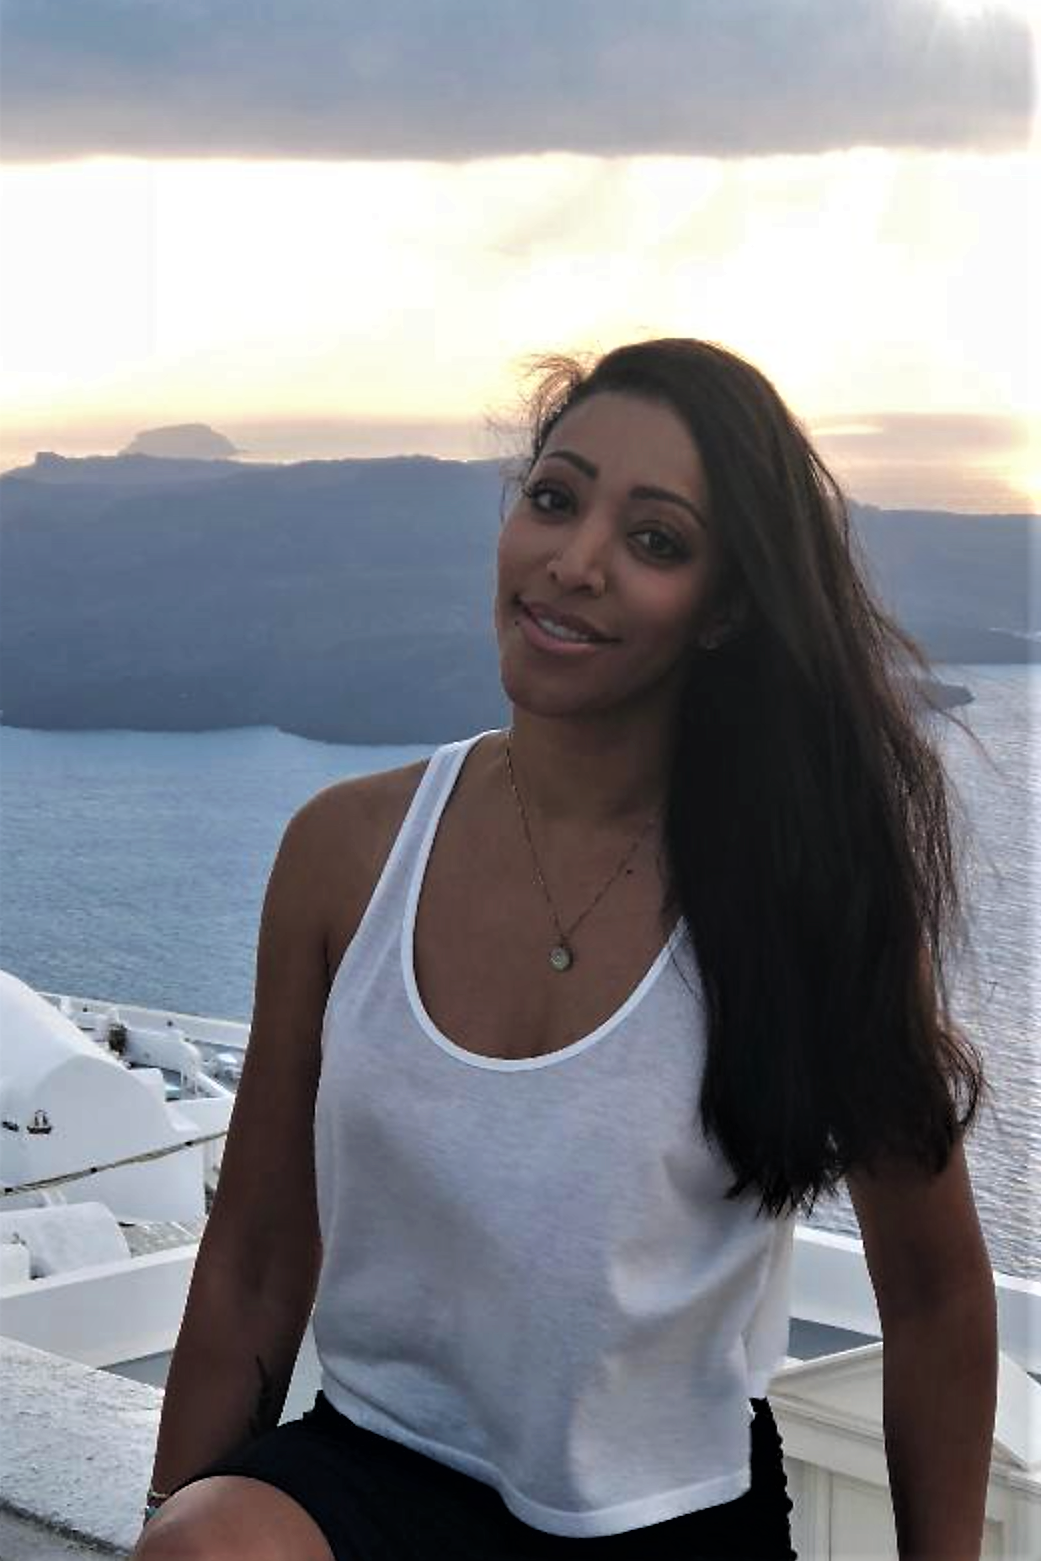 Telia DeBoyes, MD - Medical School: UCLA School of MedicineResidency: Harbor UCLA Medical CenterYear Joined: 2018Special Interests: Travel